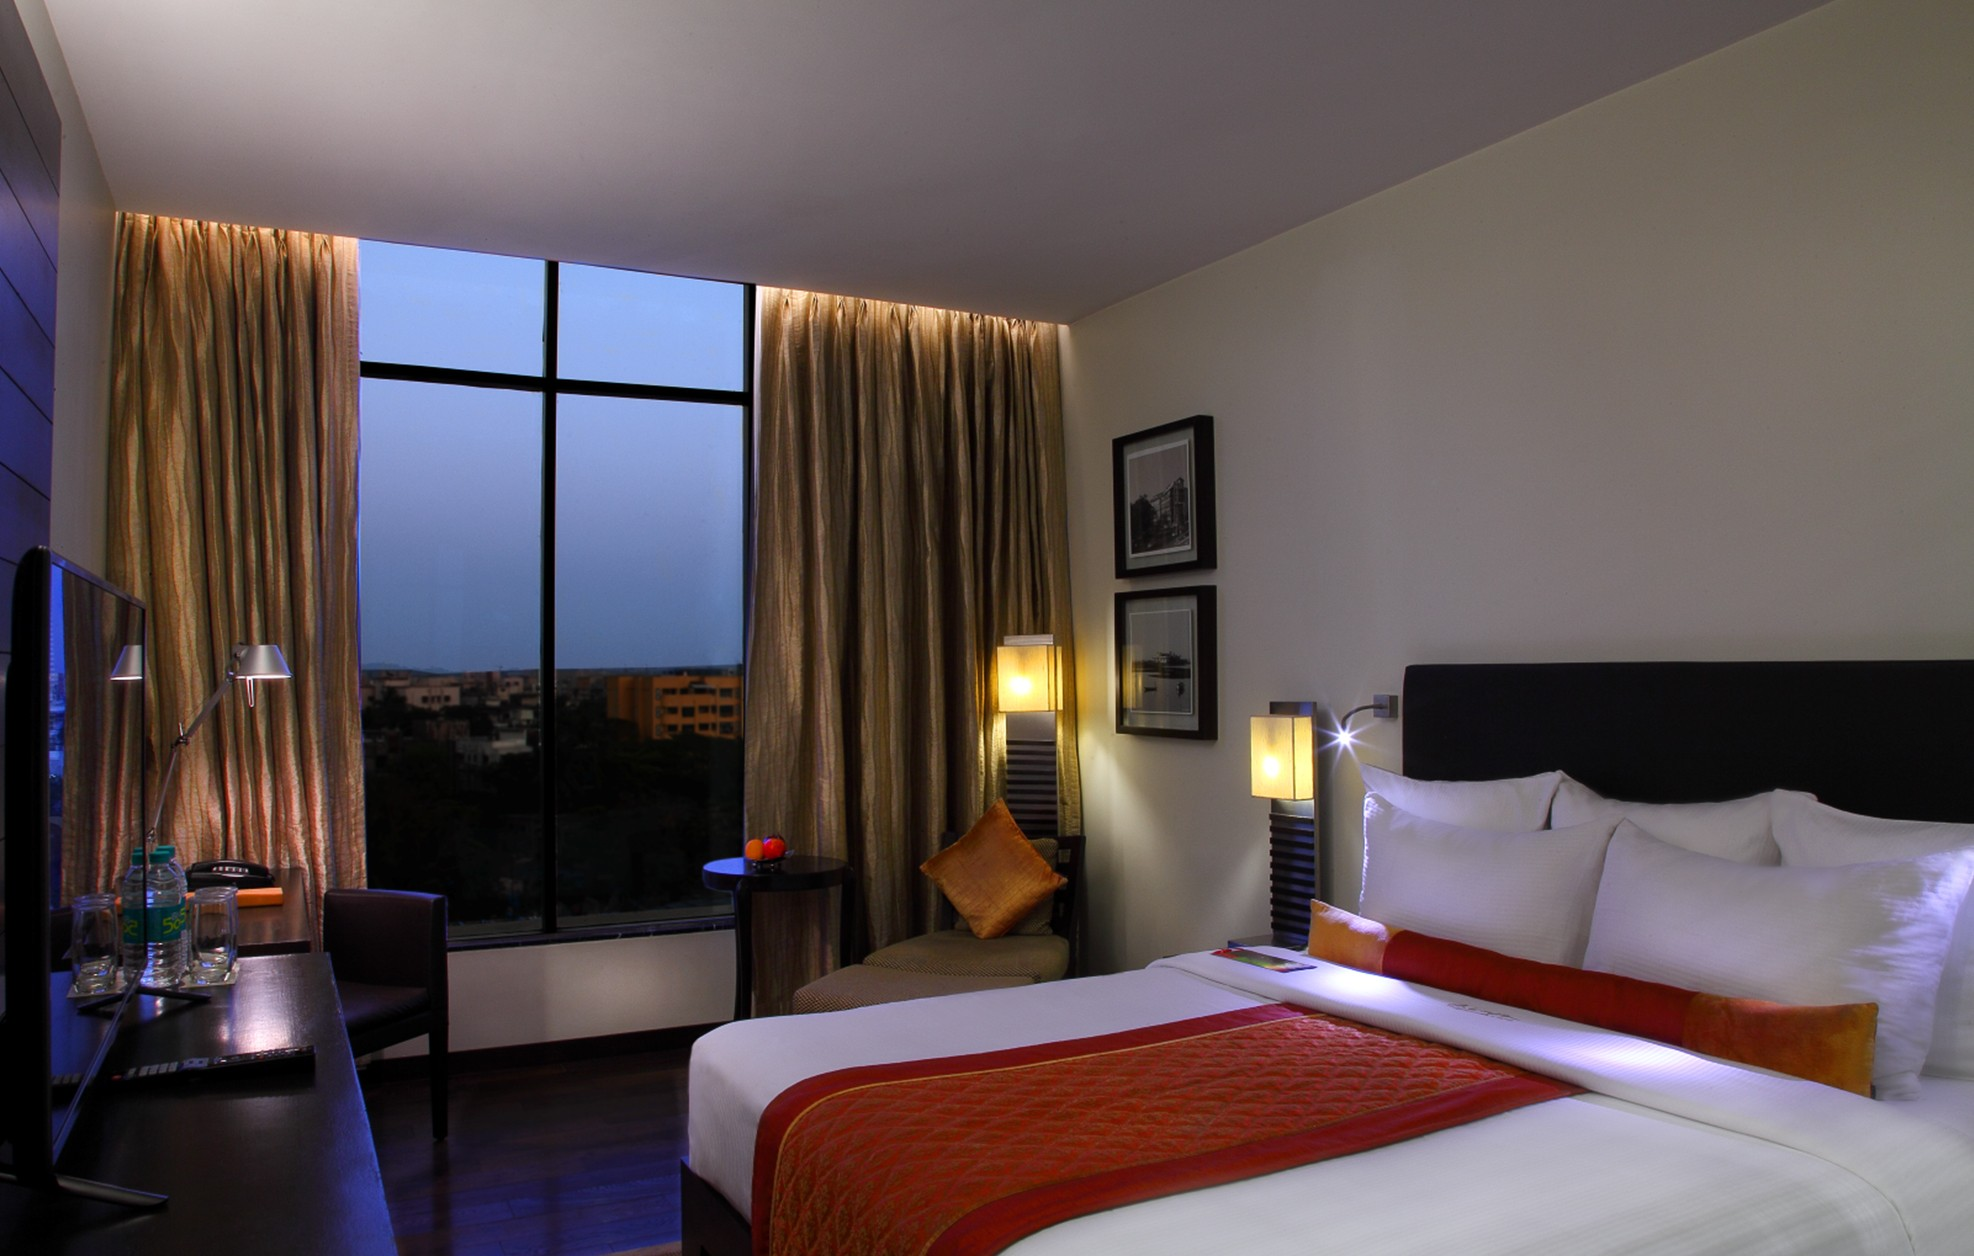 Advance Purchase Offer - The Mirador Hotel